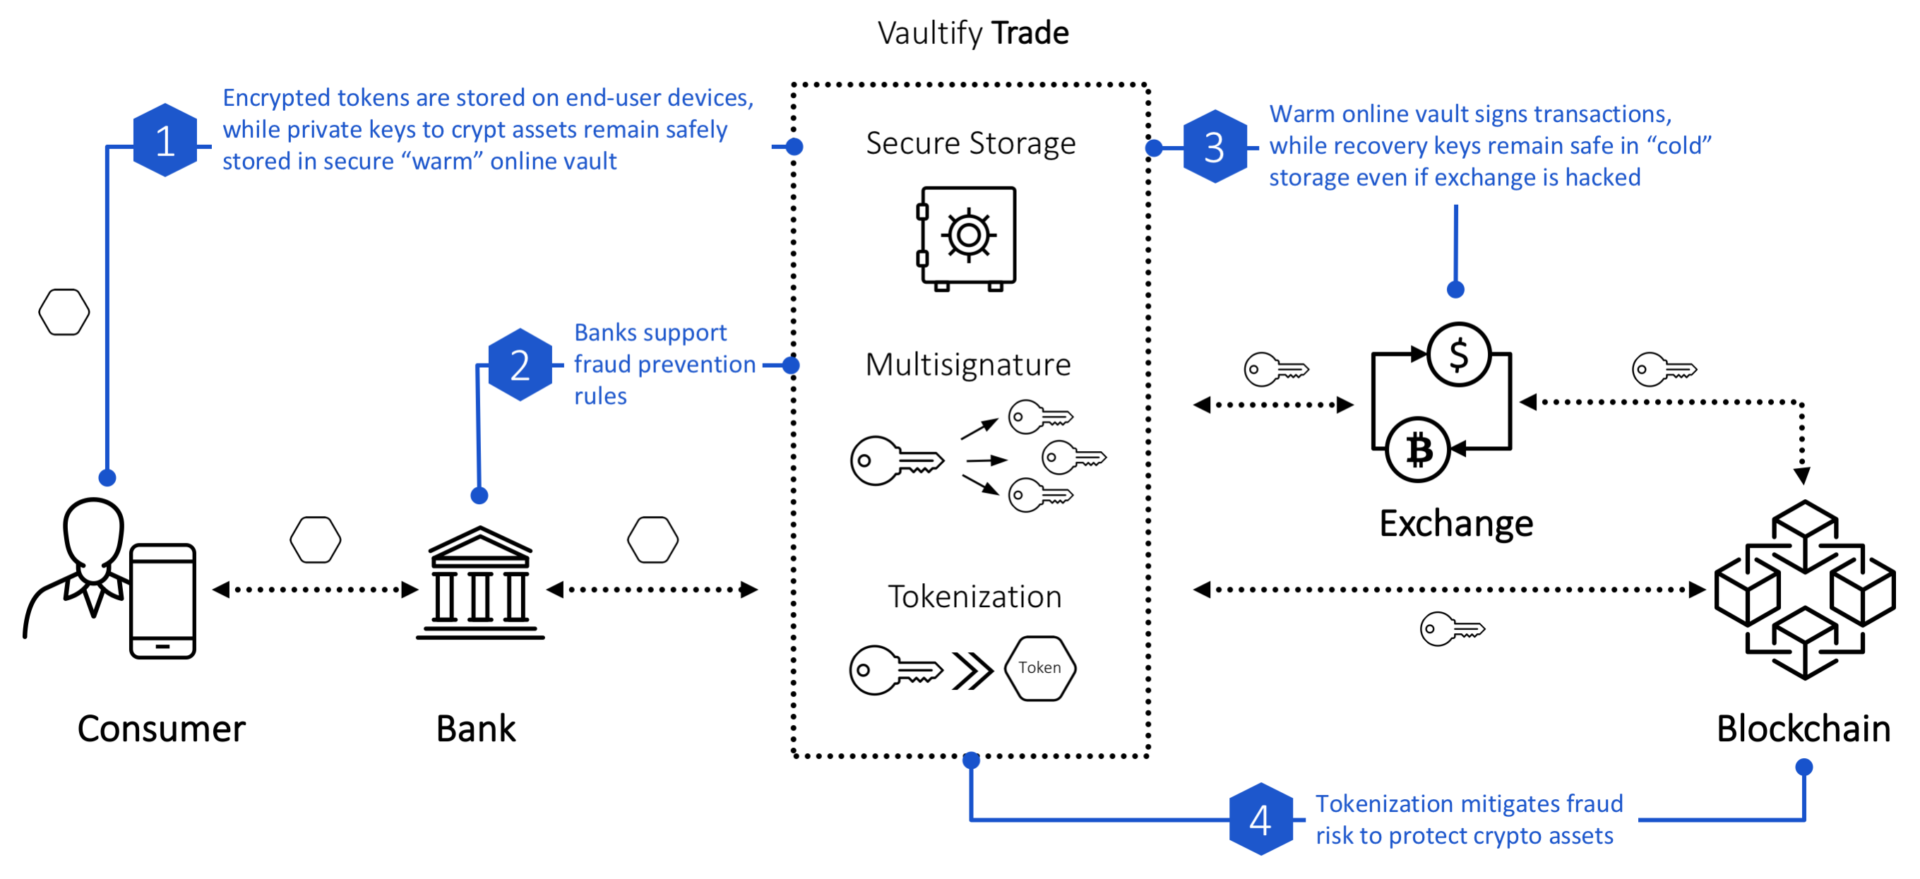 Vaultify Trade